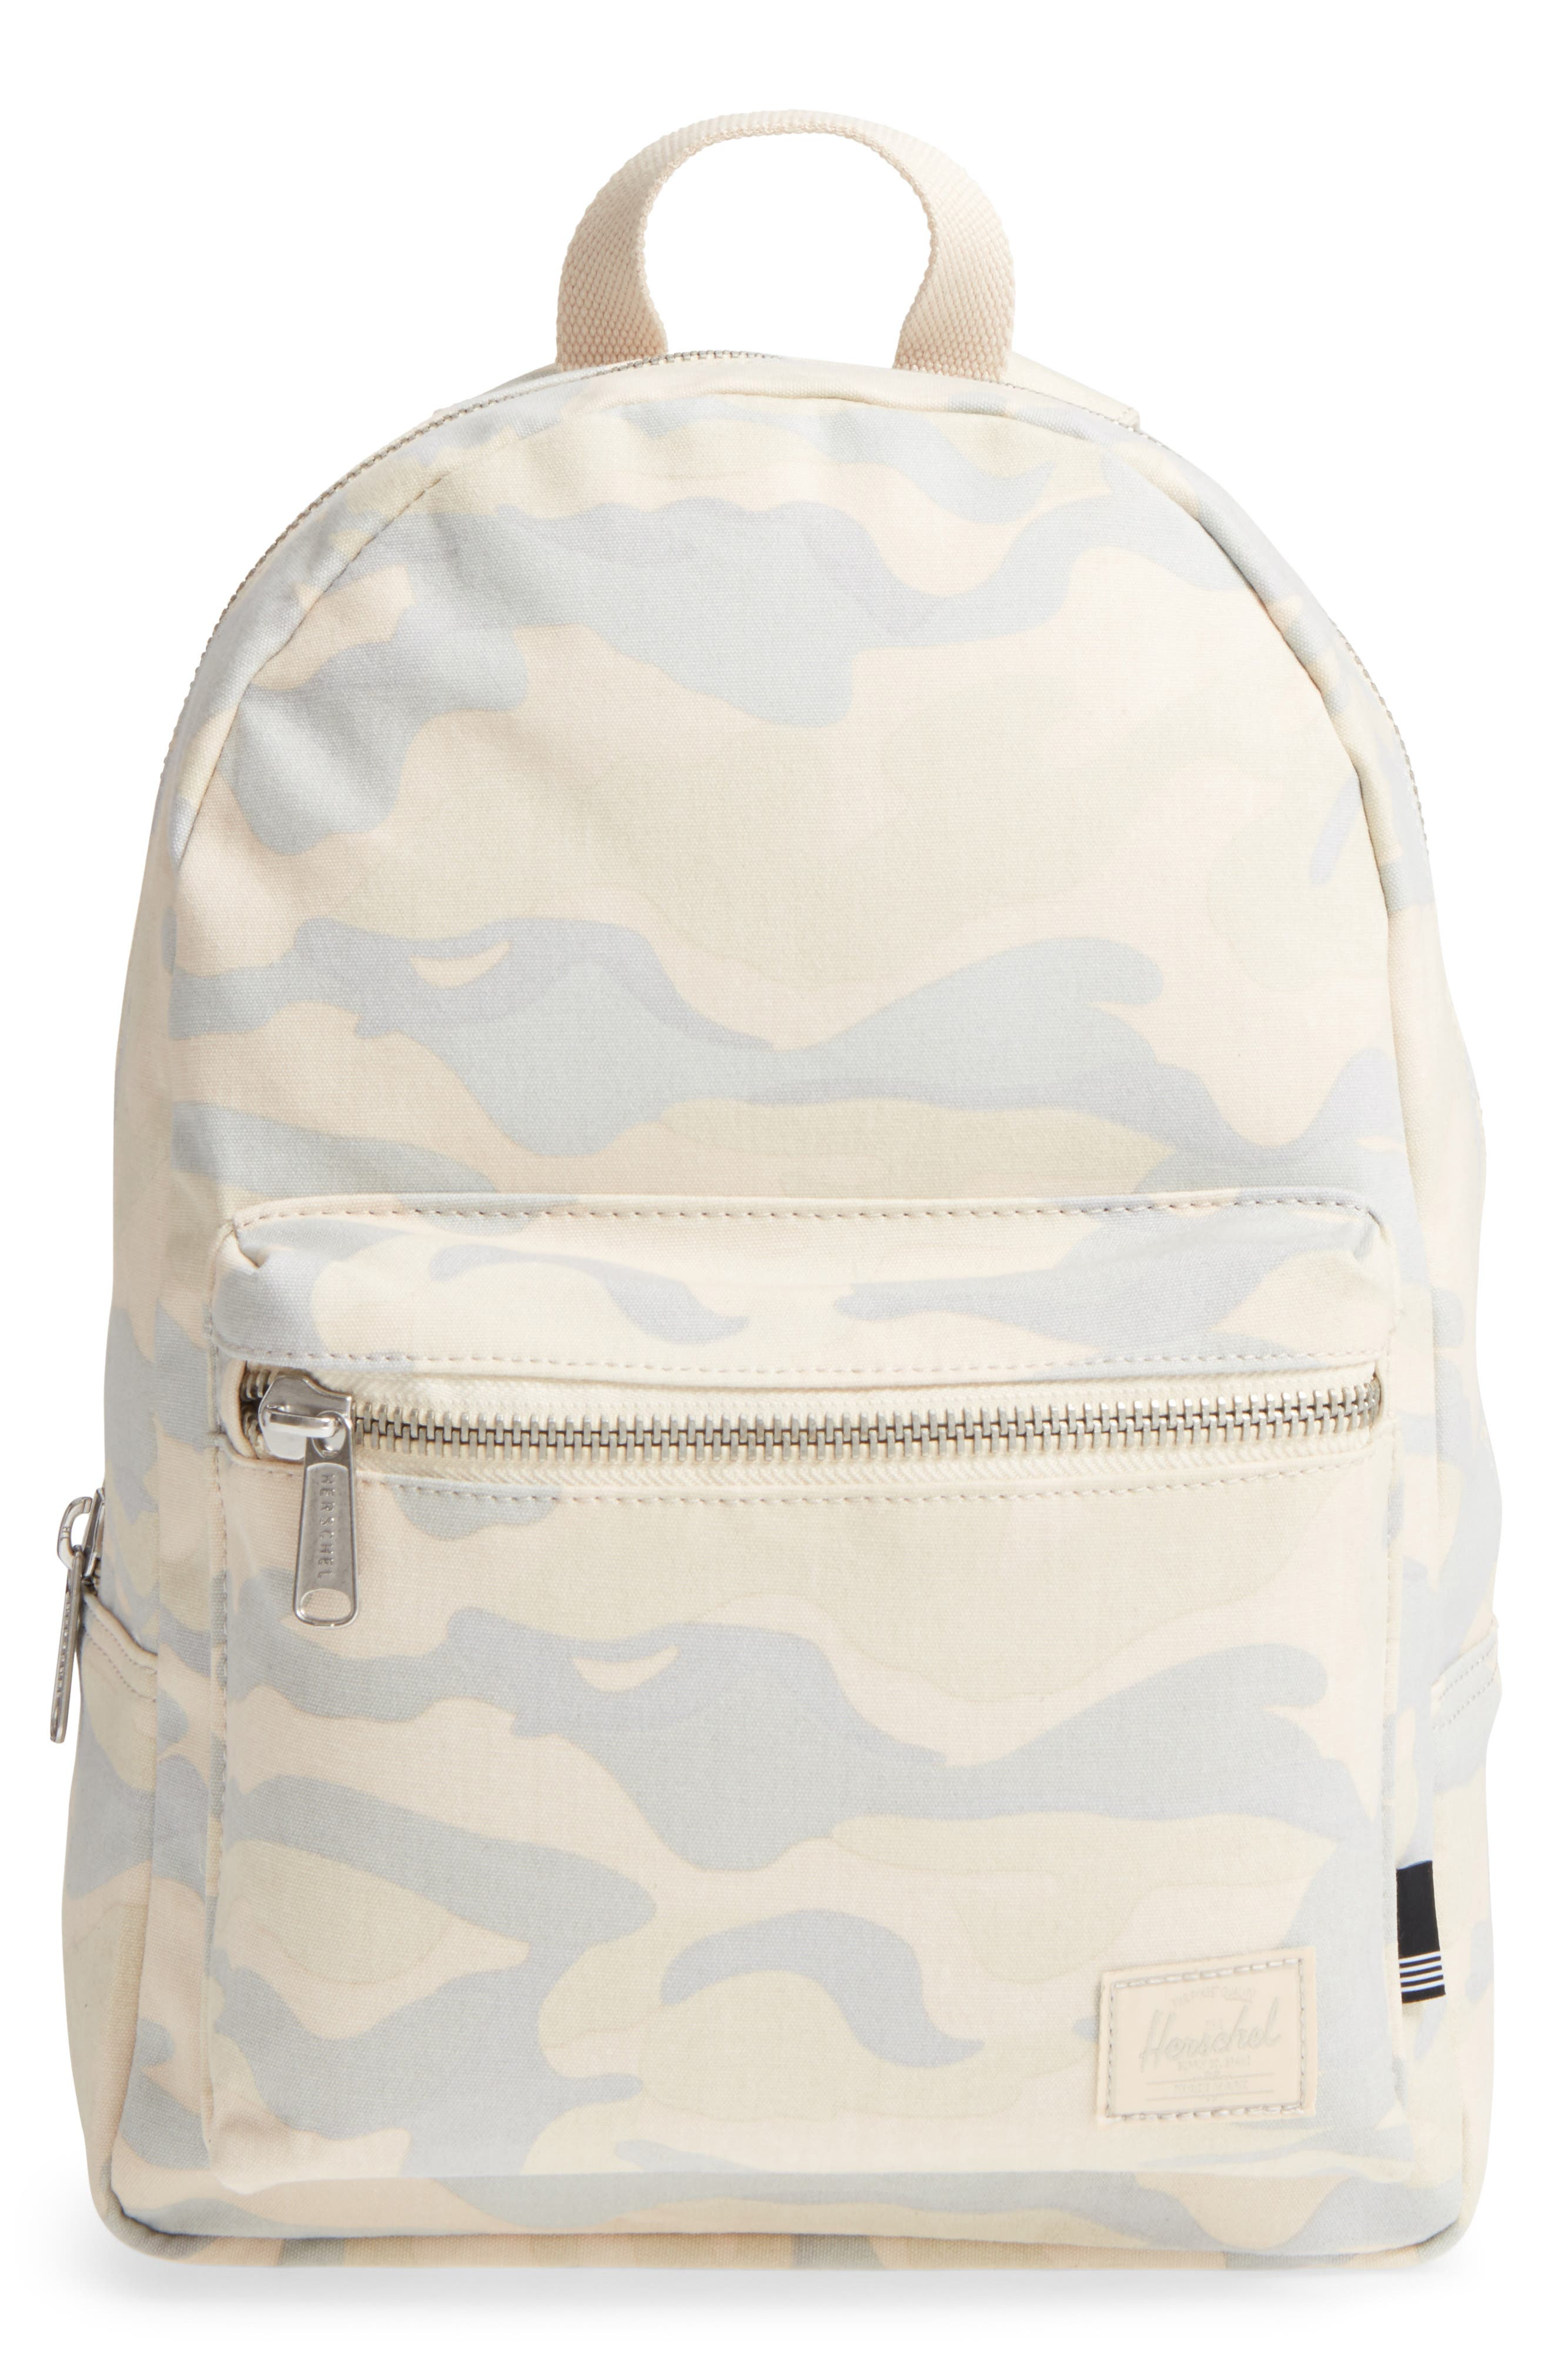 Main Image - Herschel Supply Co. X-Small Grove Backpack